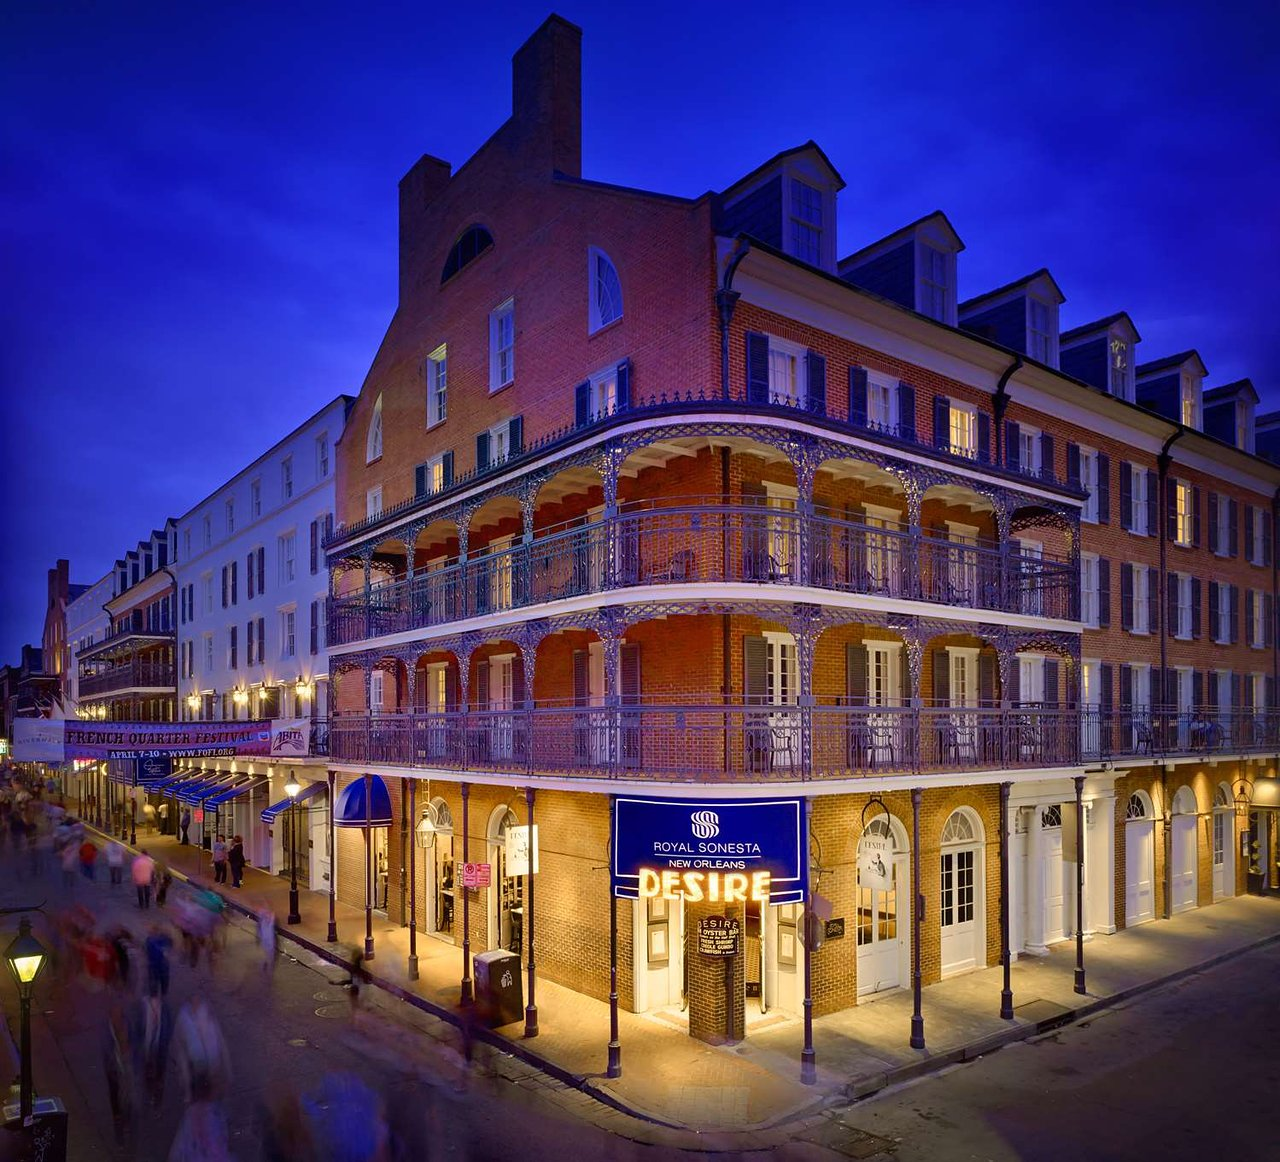 The 10 Best New Orleans Hotels With Balconies Mar 2021 With Prices Tripadvisor